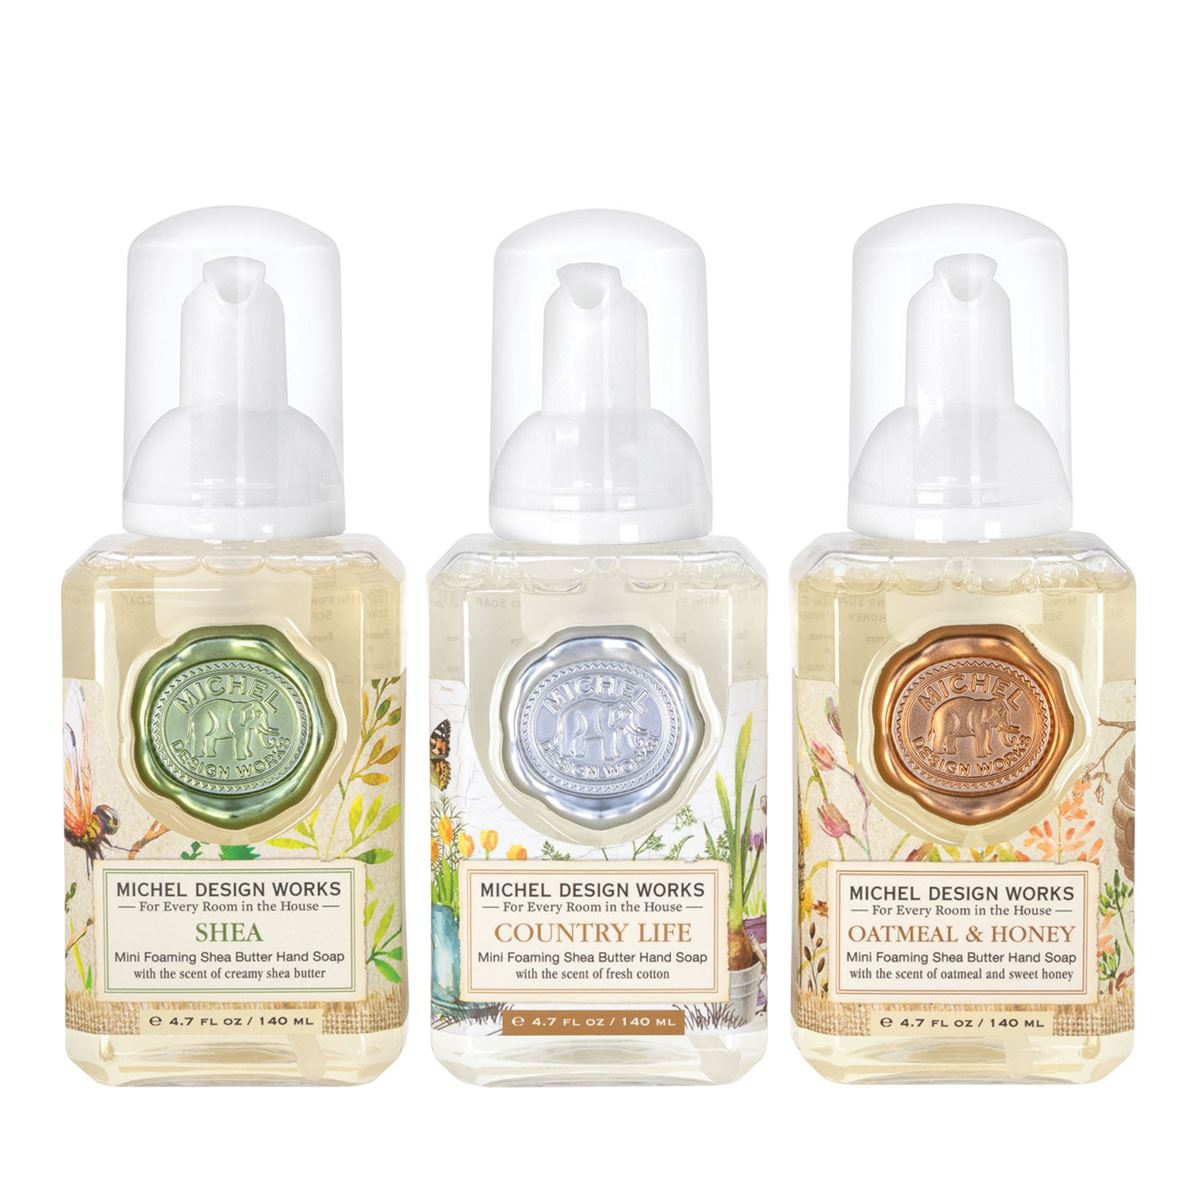 Set of 3 Foaming Hand Soaps - Shea, Country Life, Oatmeal & Honey